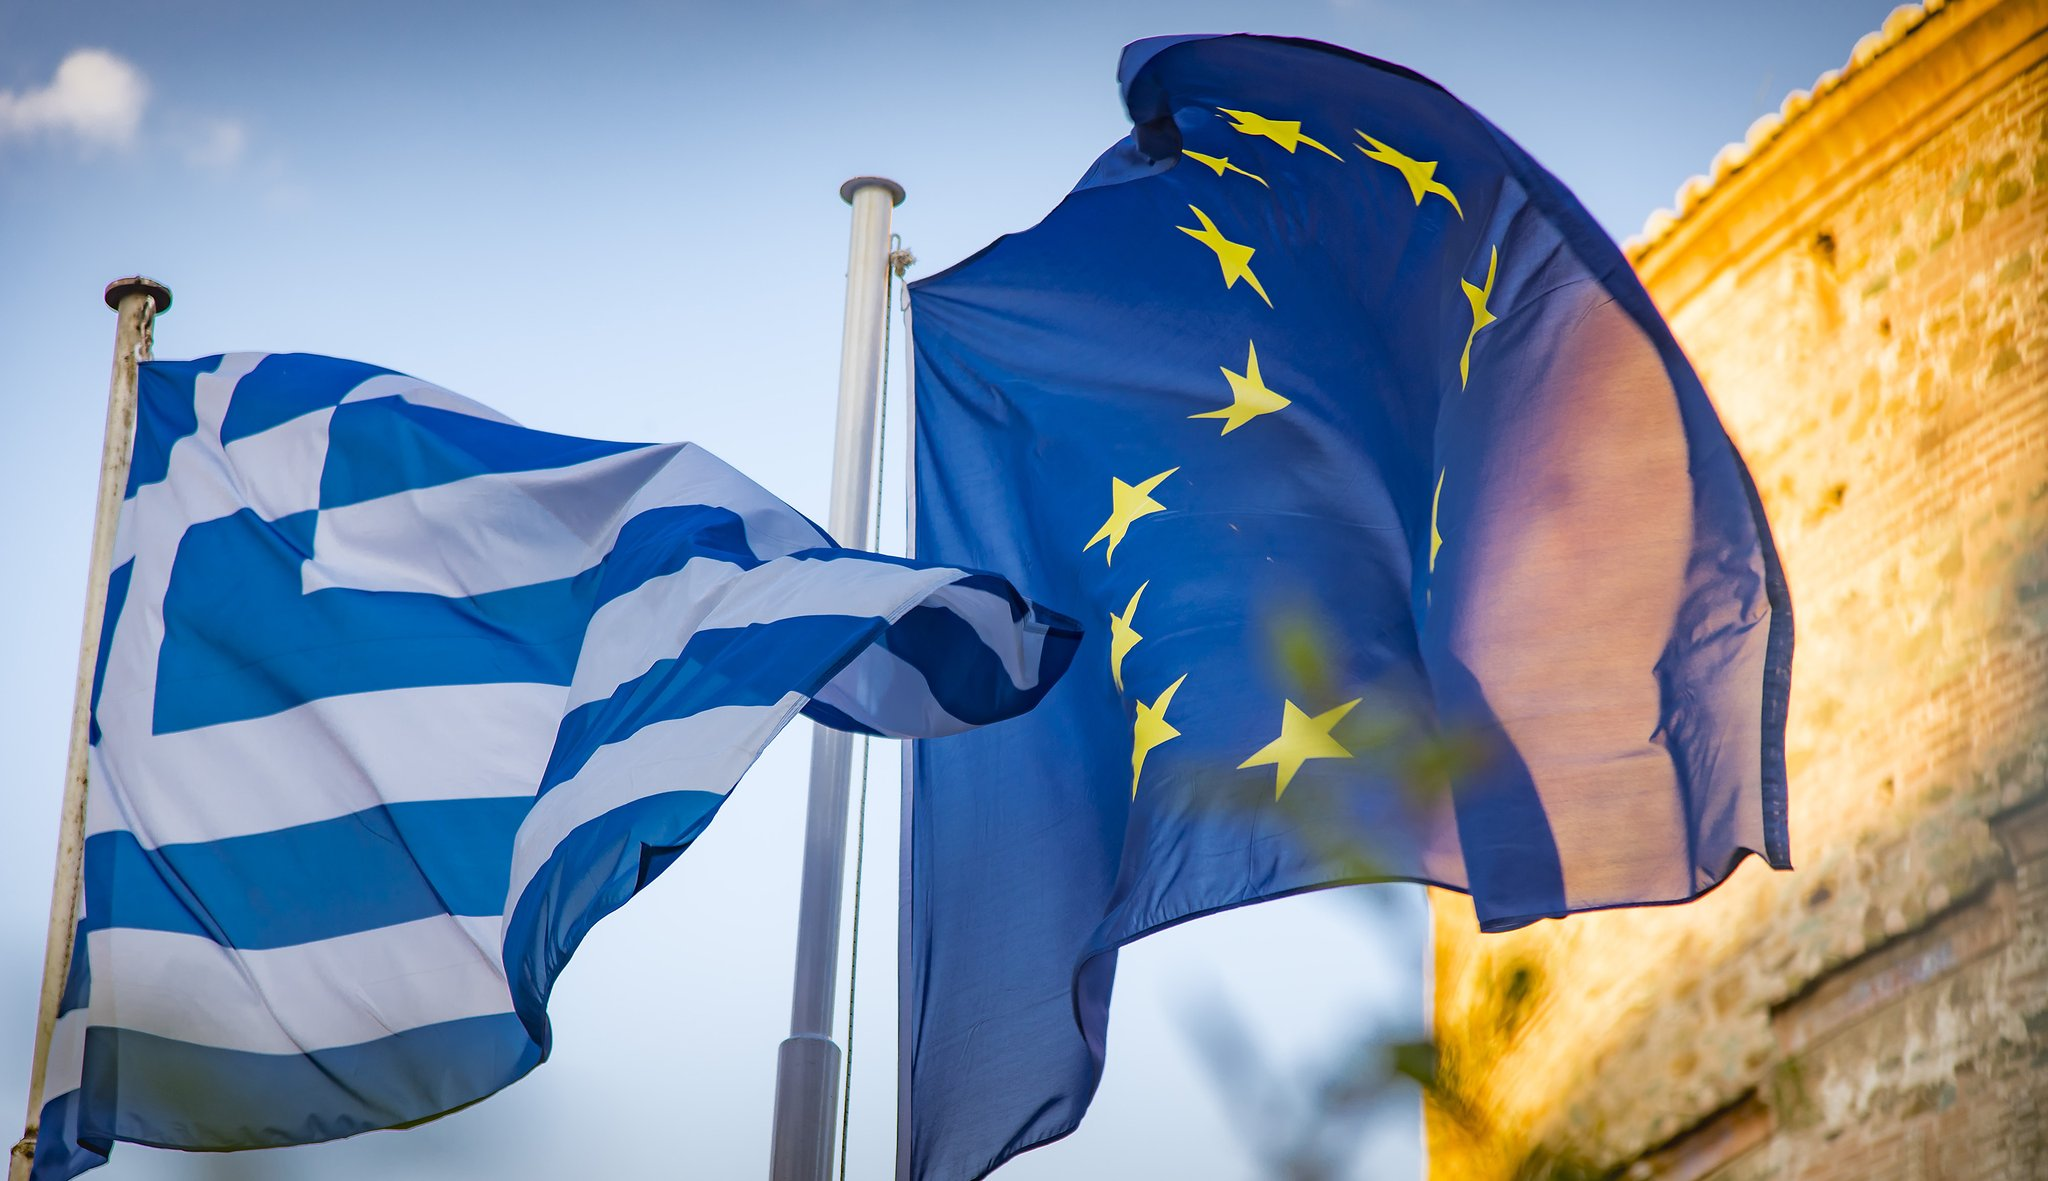 Greece and EU flags in Greece